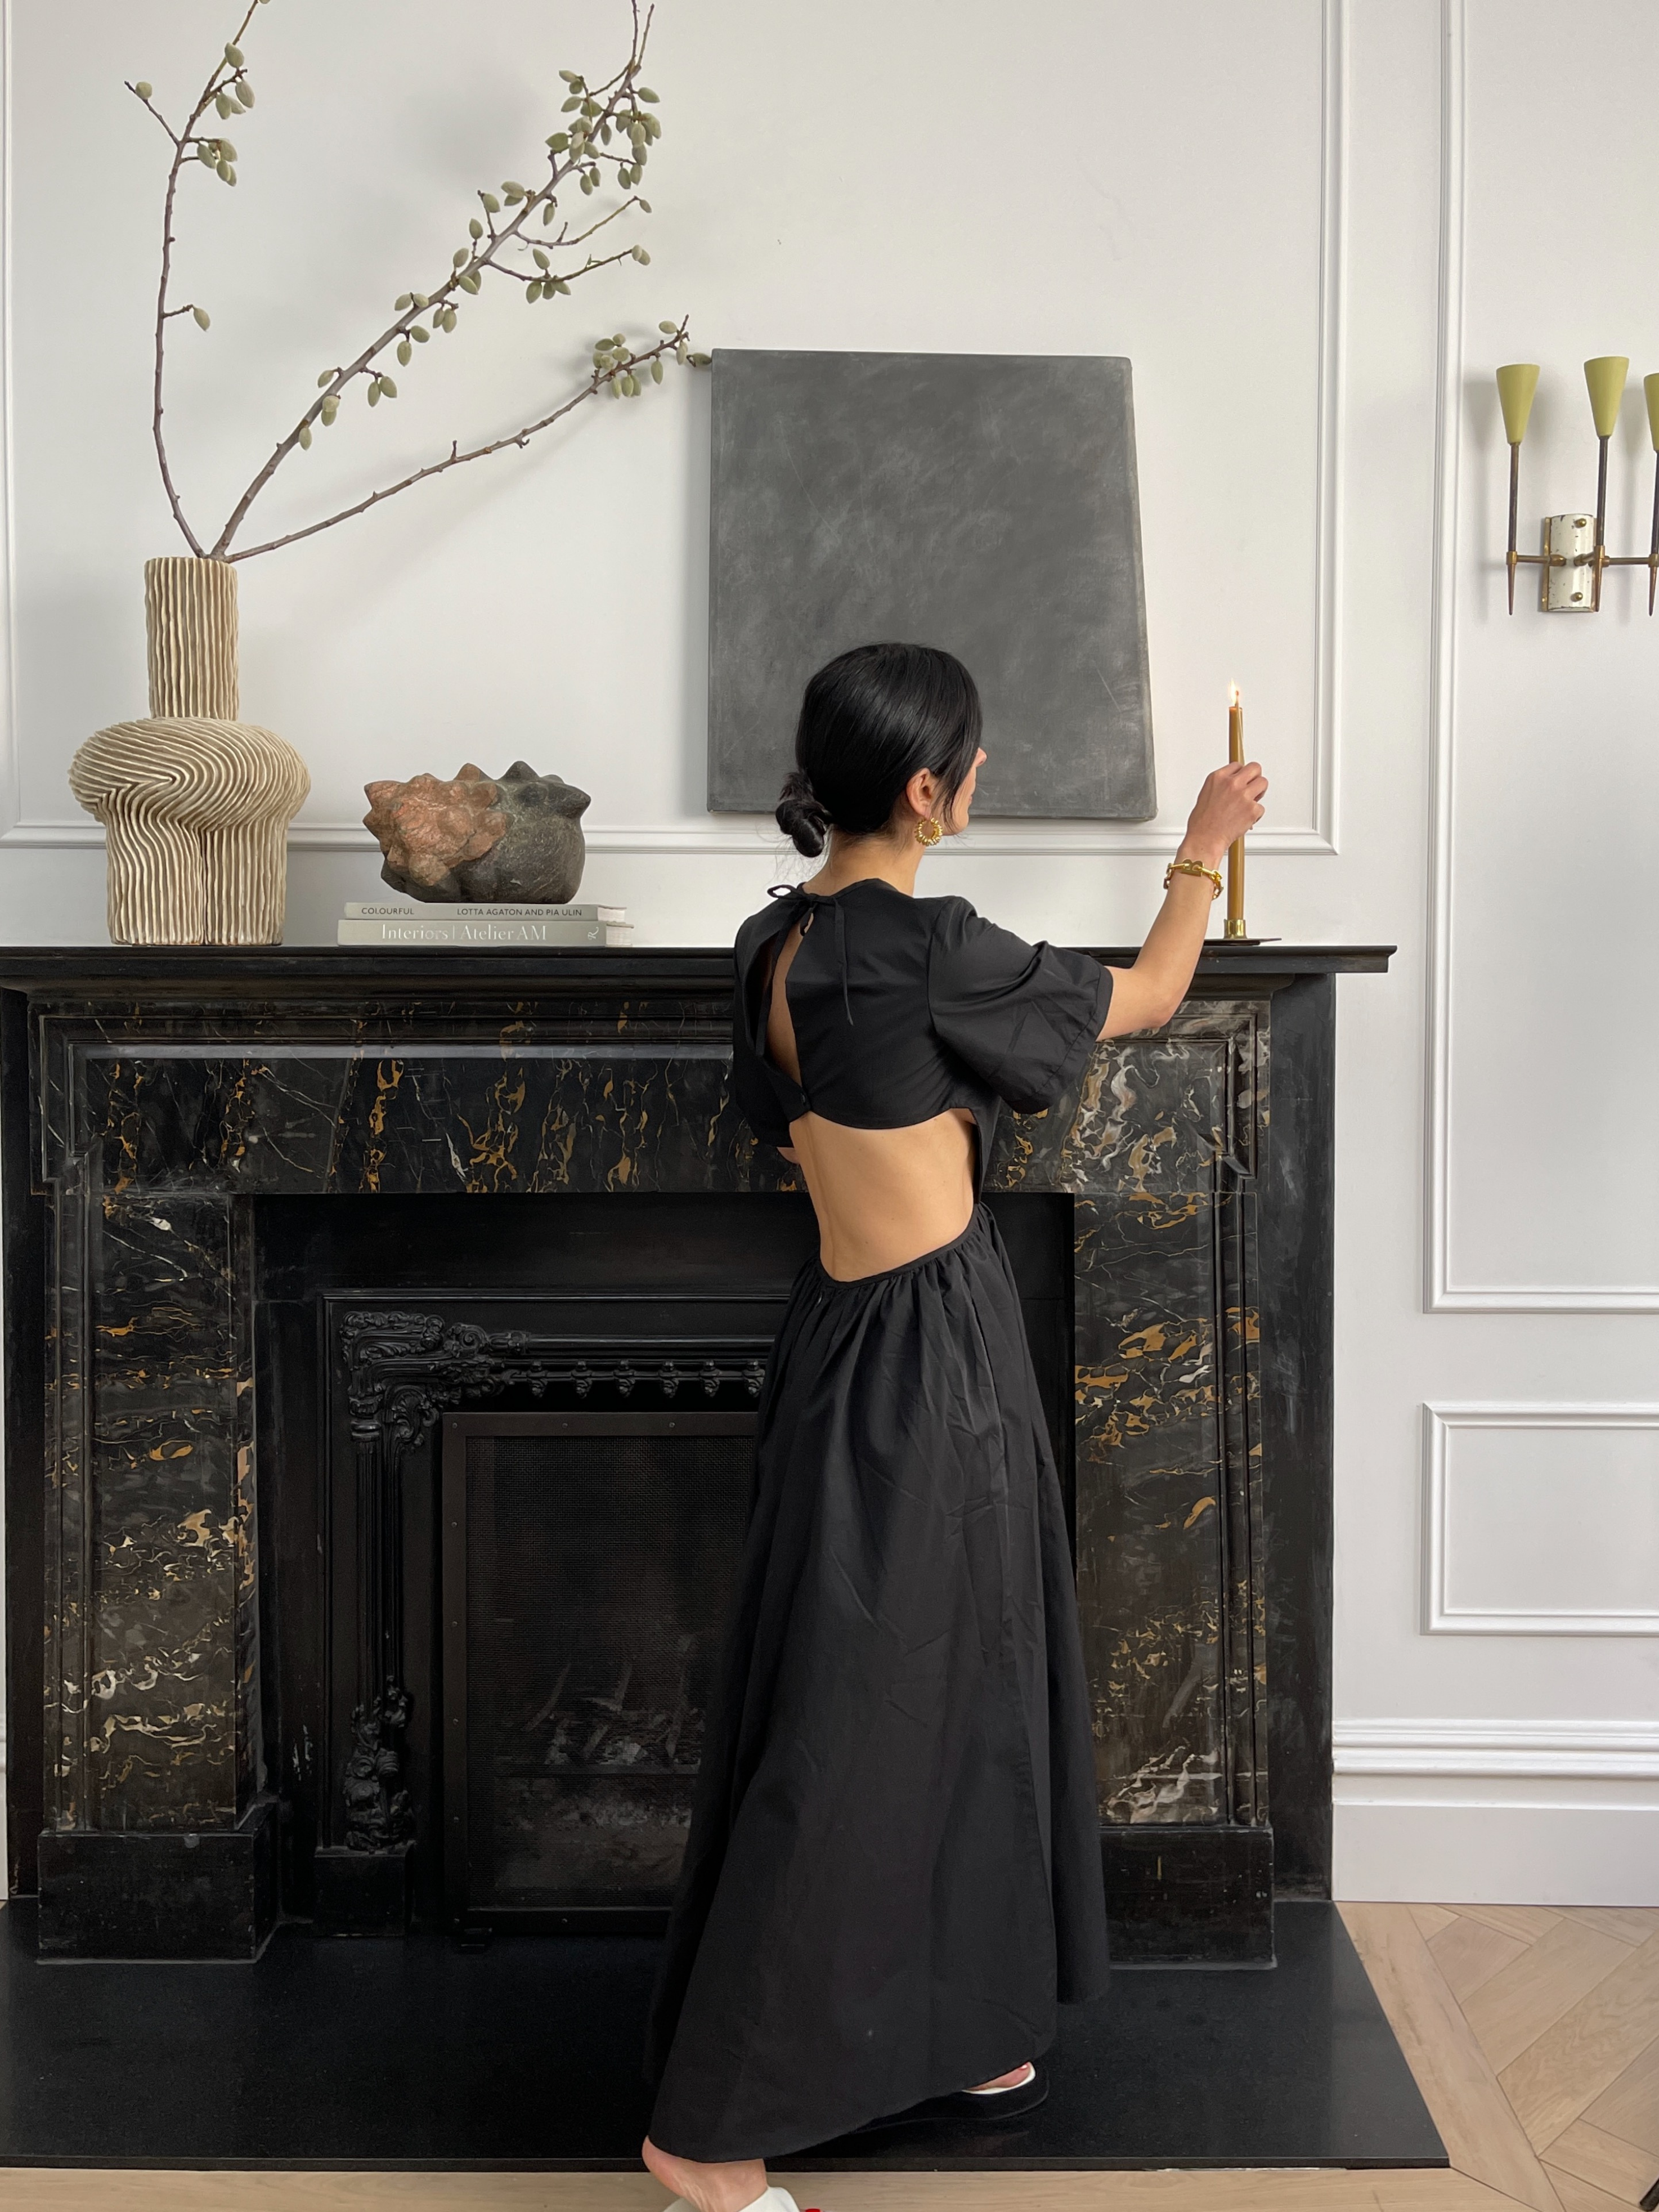 How to Style a Mantel